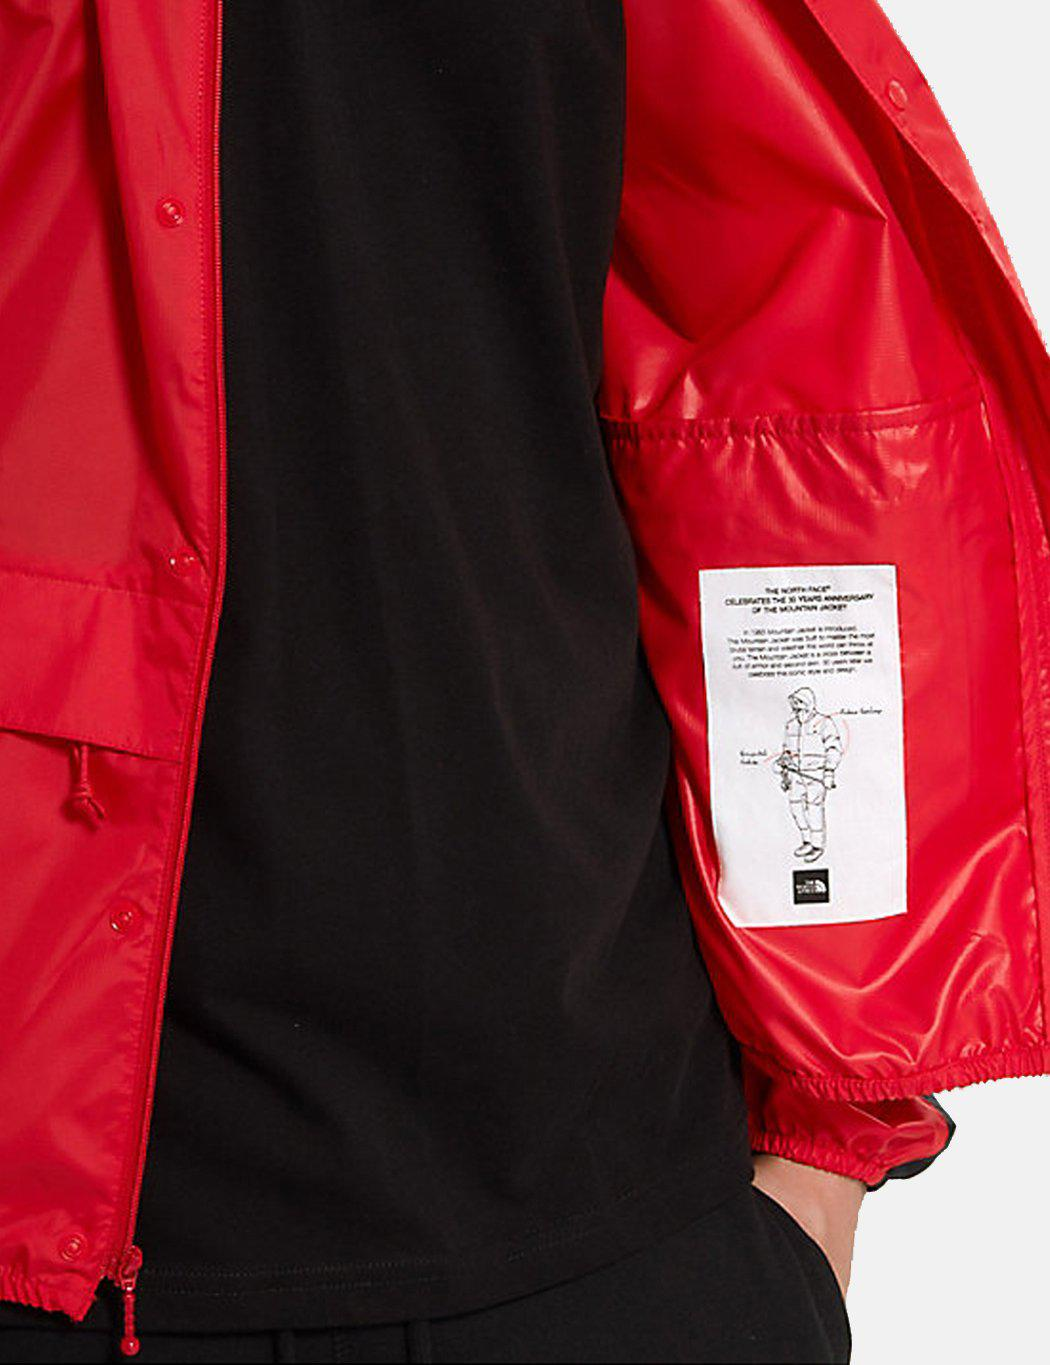 Lyst - The North Face 1985 Sea Cel Mountain Jacket in Red for Men 99fcc408bc42